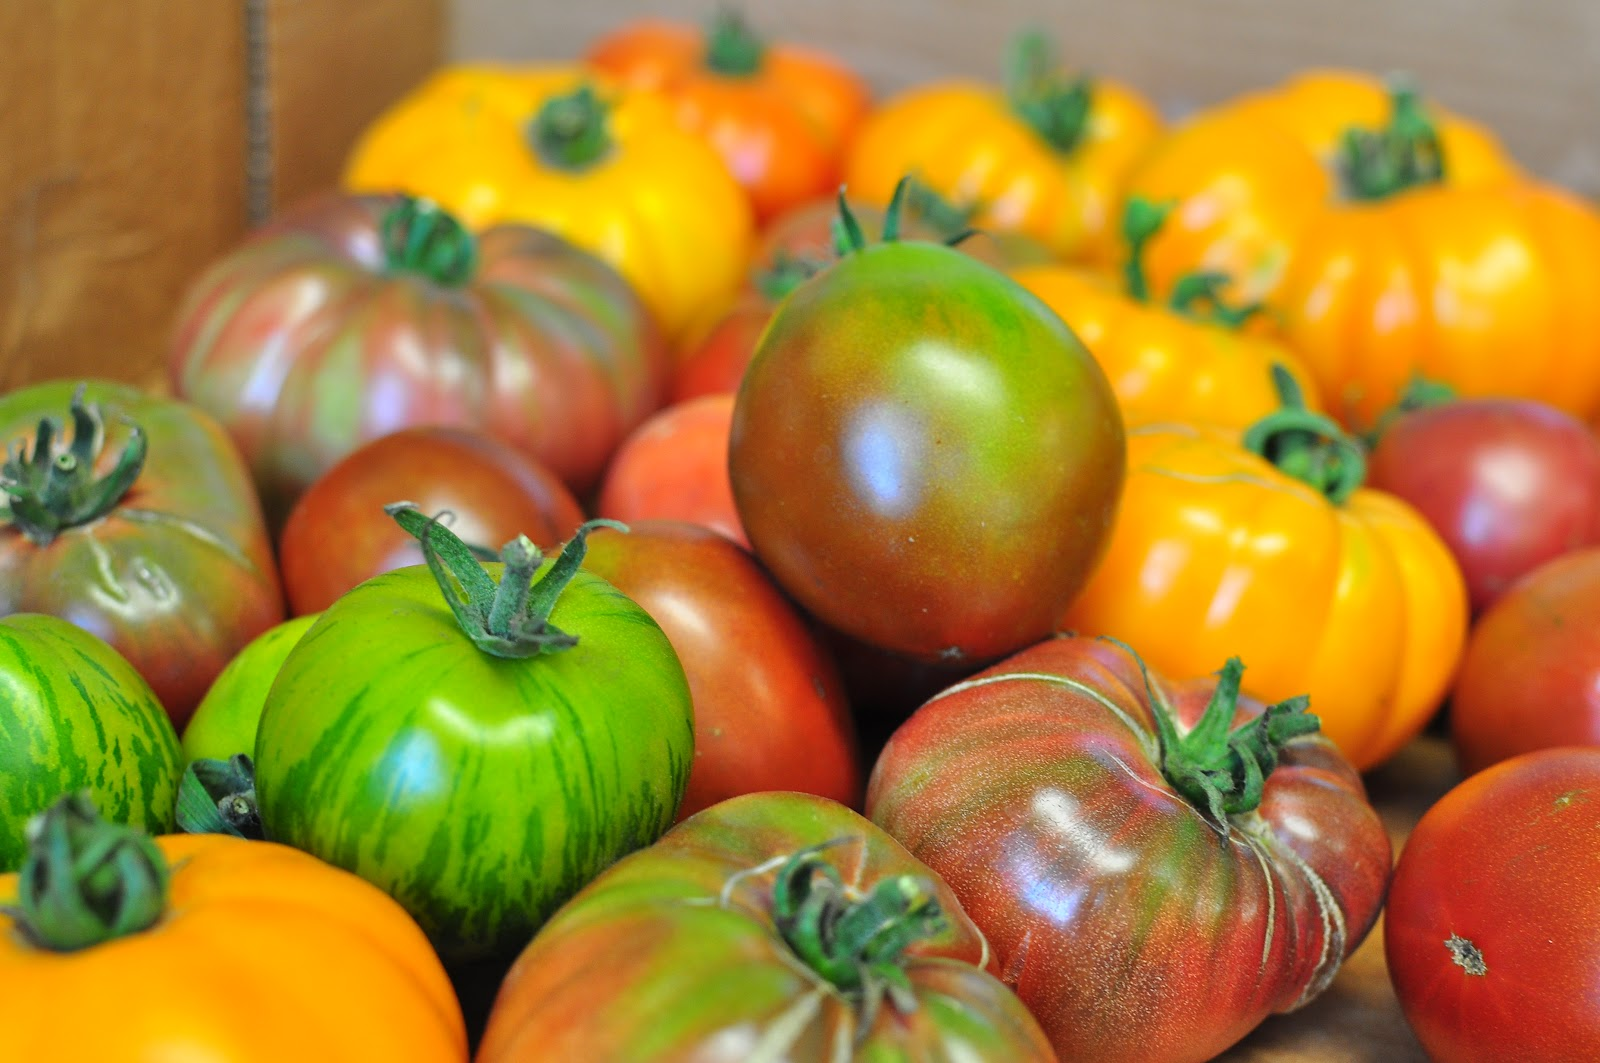 Orcas Heirloom Tomatoes